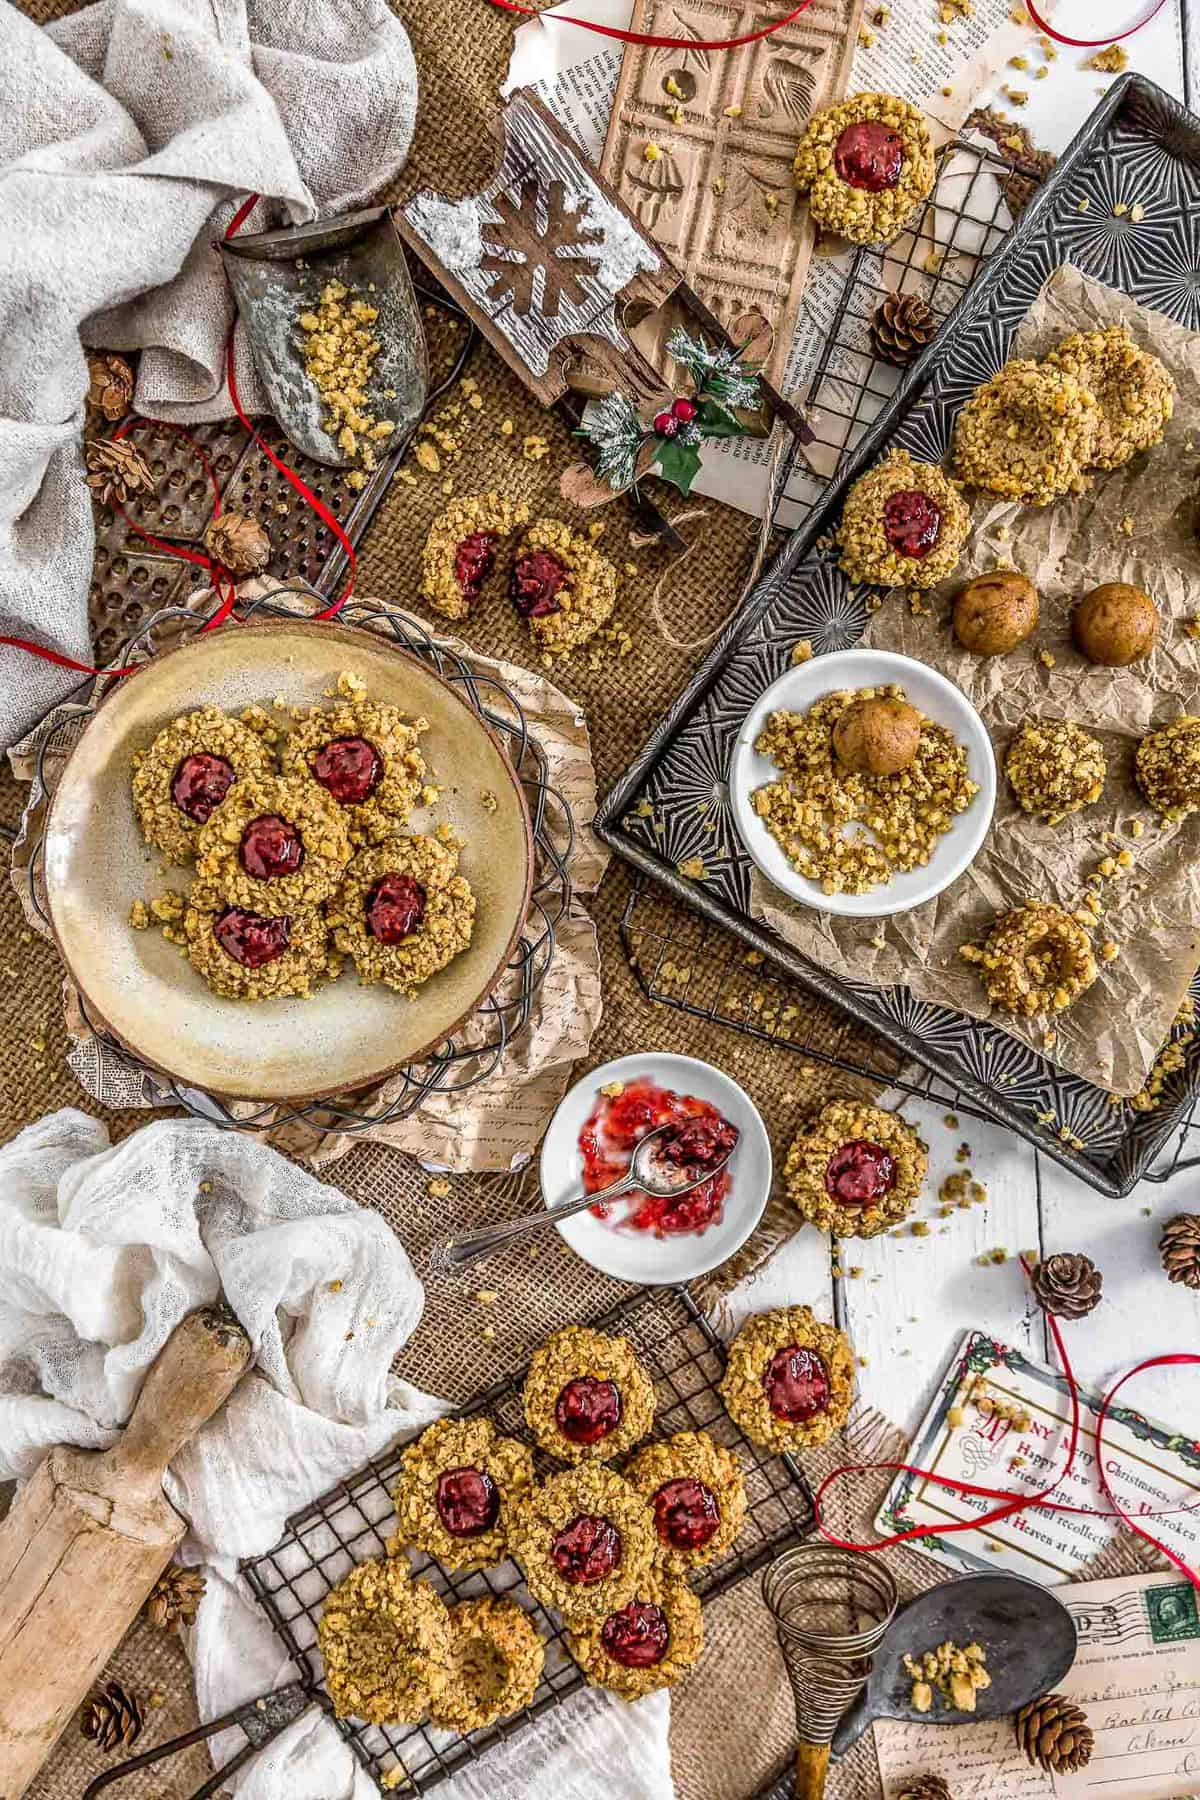 Tablescape of Vegan Thumbprint Cookies